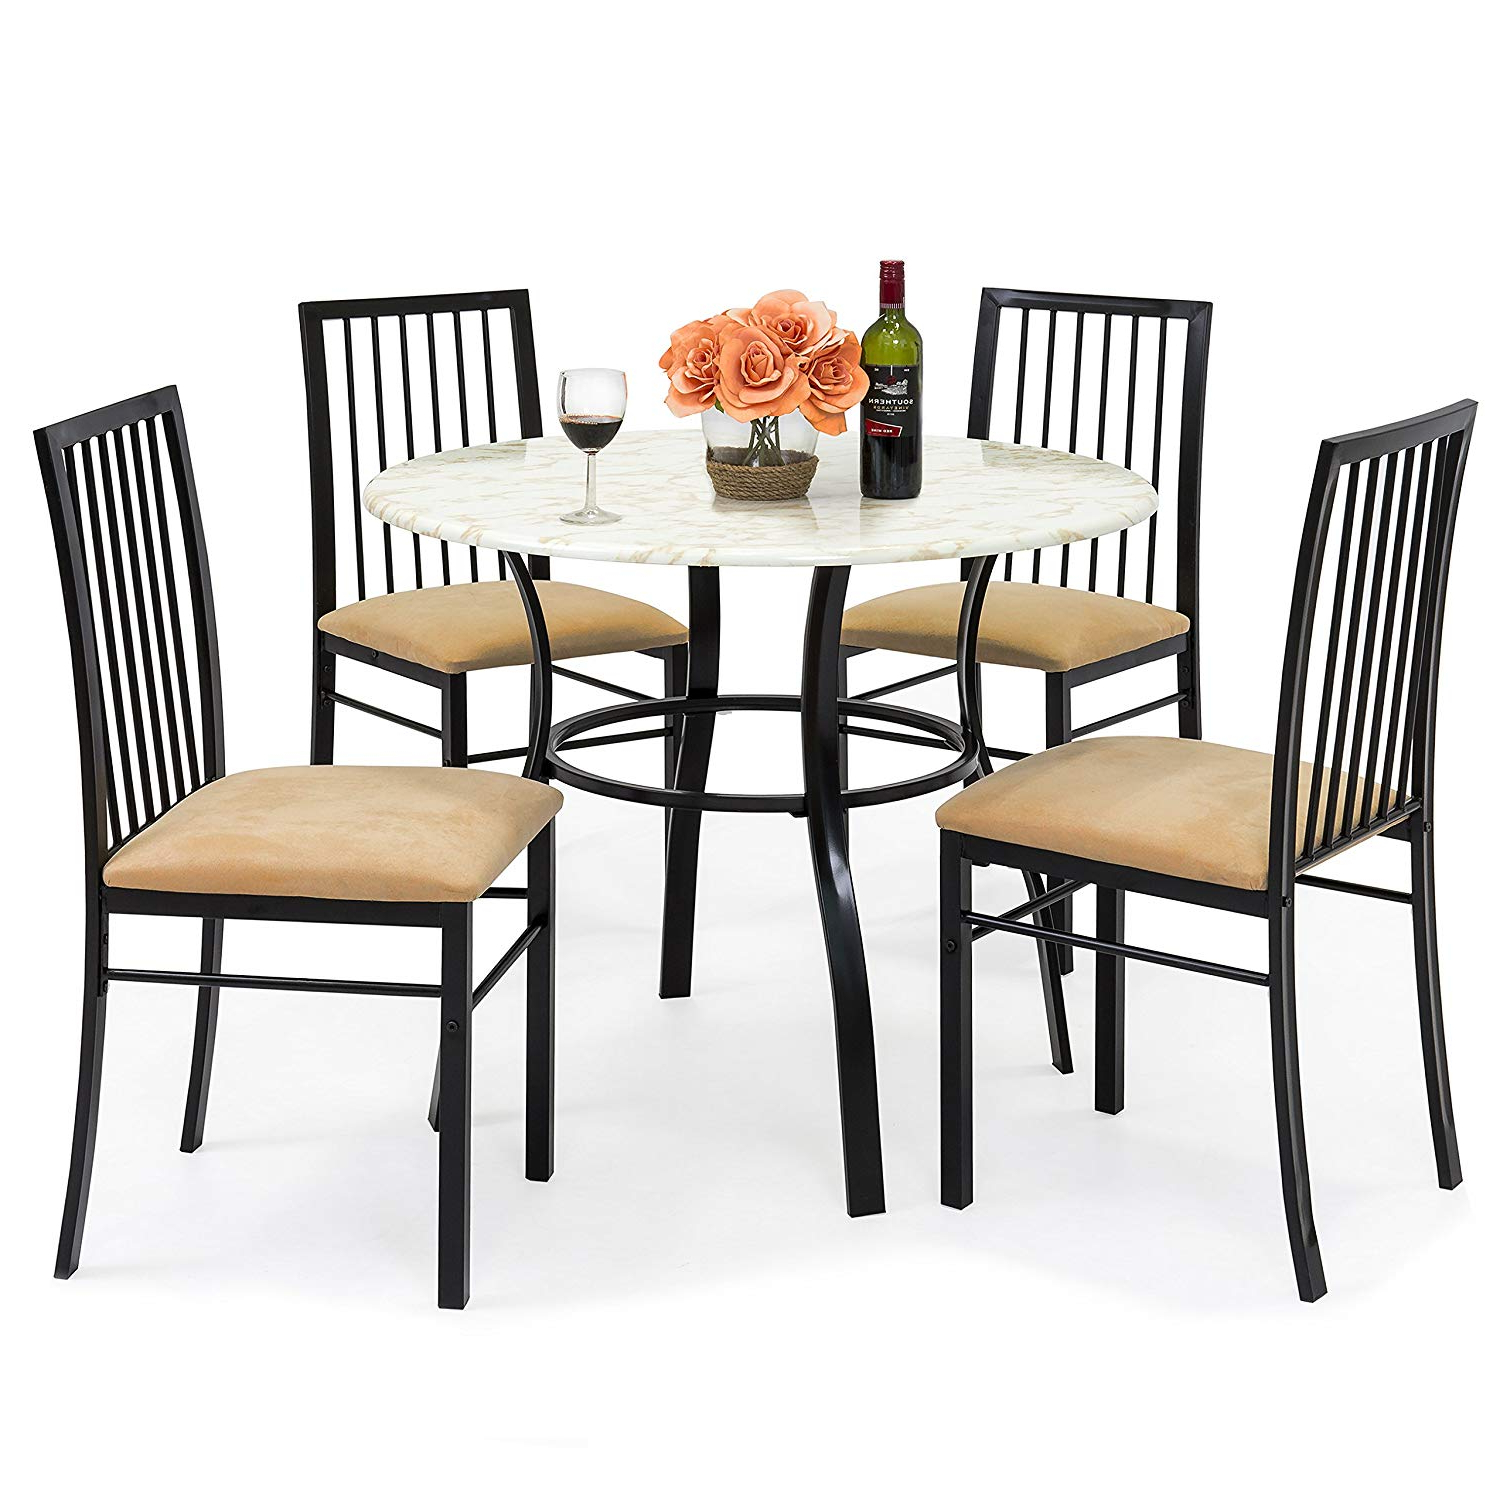 2020 Amazon – Best Choice Products 5 Piece Faux Marble Top Dining Throughout Evellen 5 Piece Solid Wood Dining Sets (Set Of 5) (View 2 of 25)